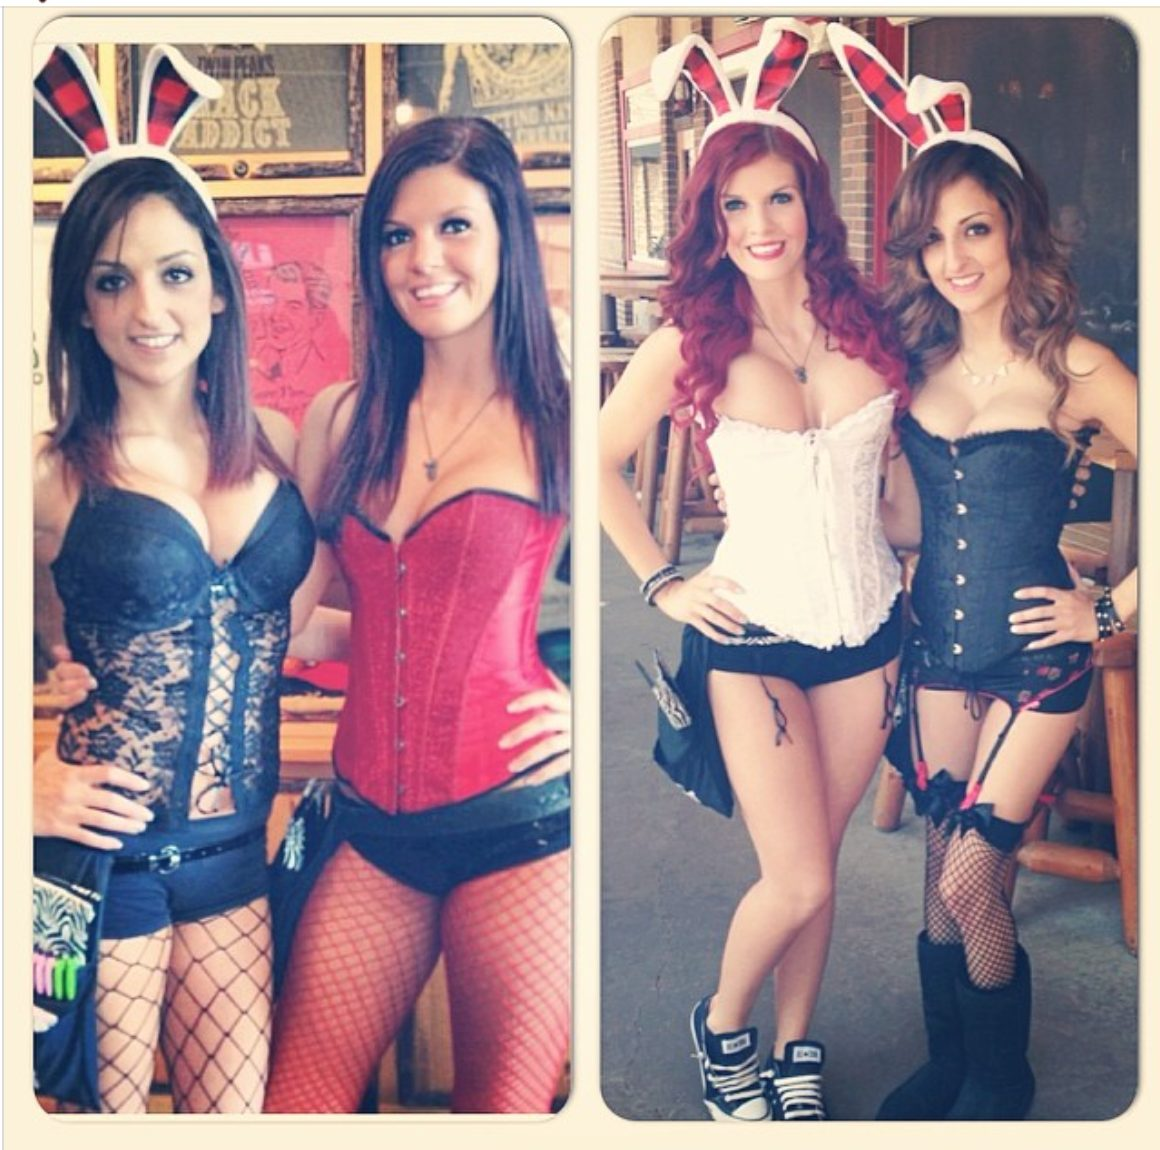 Twin Peaks Babes Of The Day